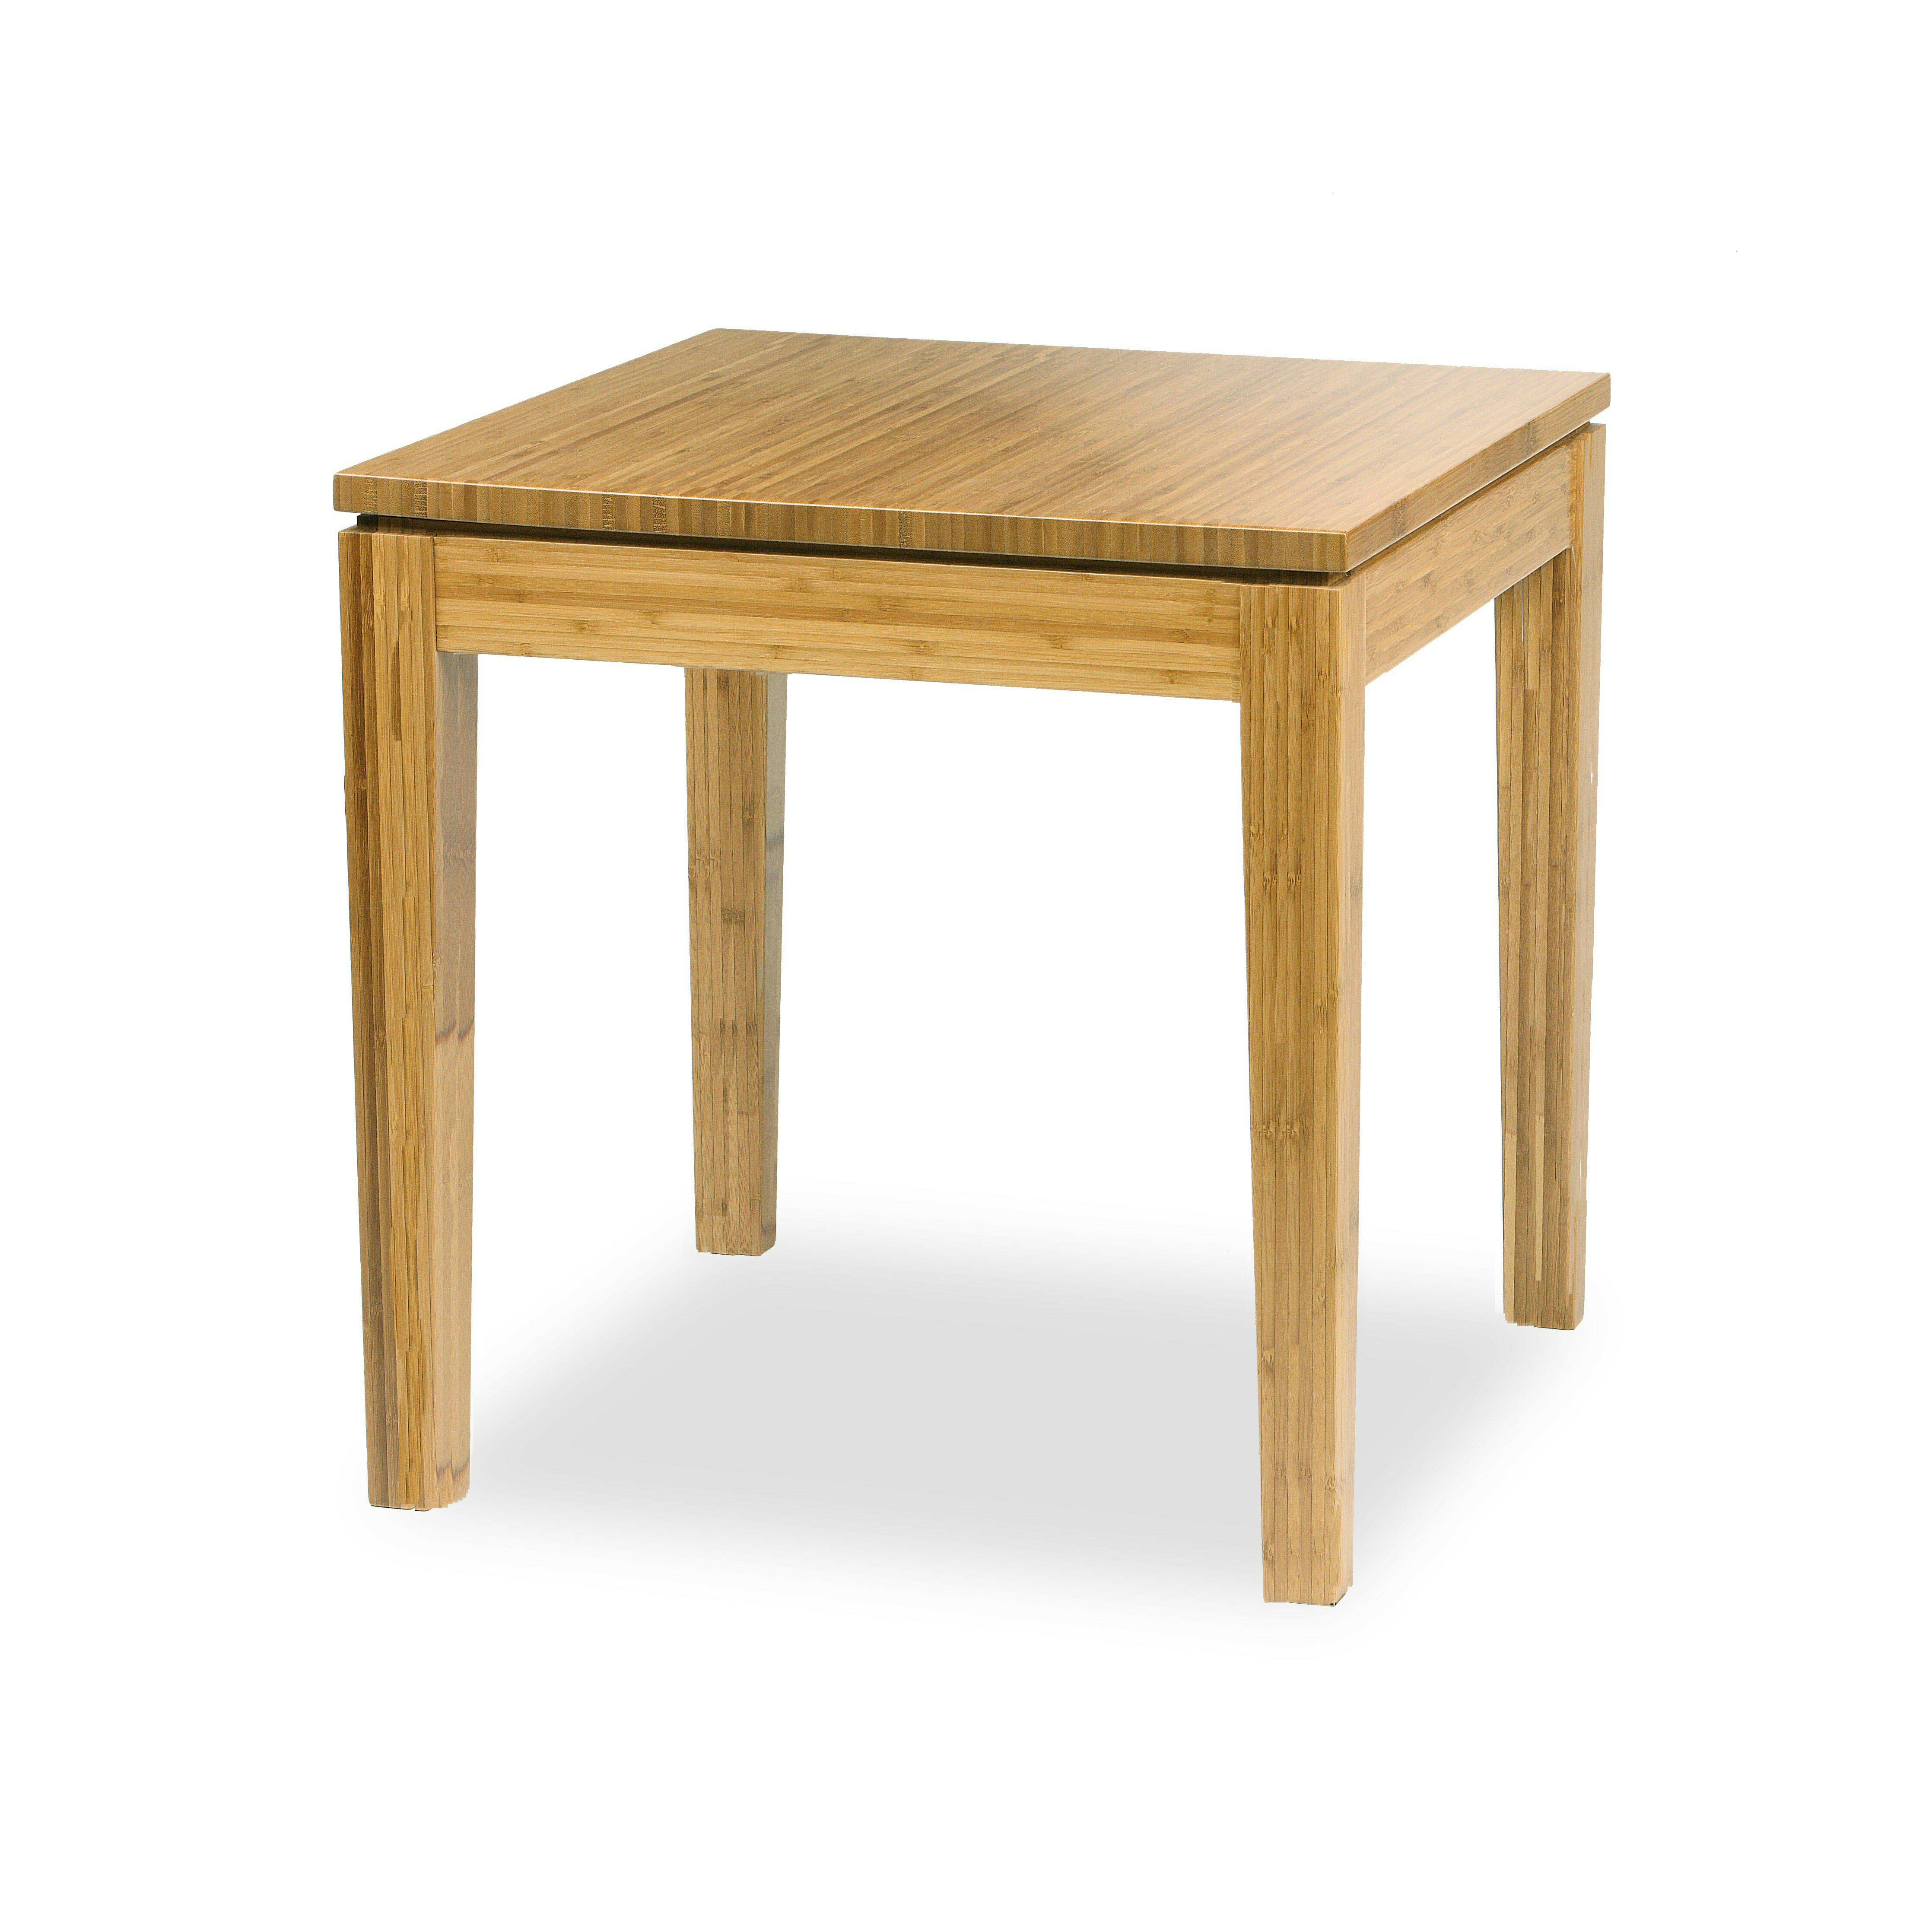 Bamboo Dining Room Furniture Bamboogle Brazil Bamboo End Table Amp Reviews Wayfair